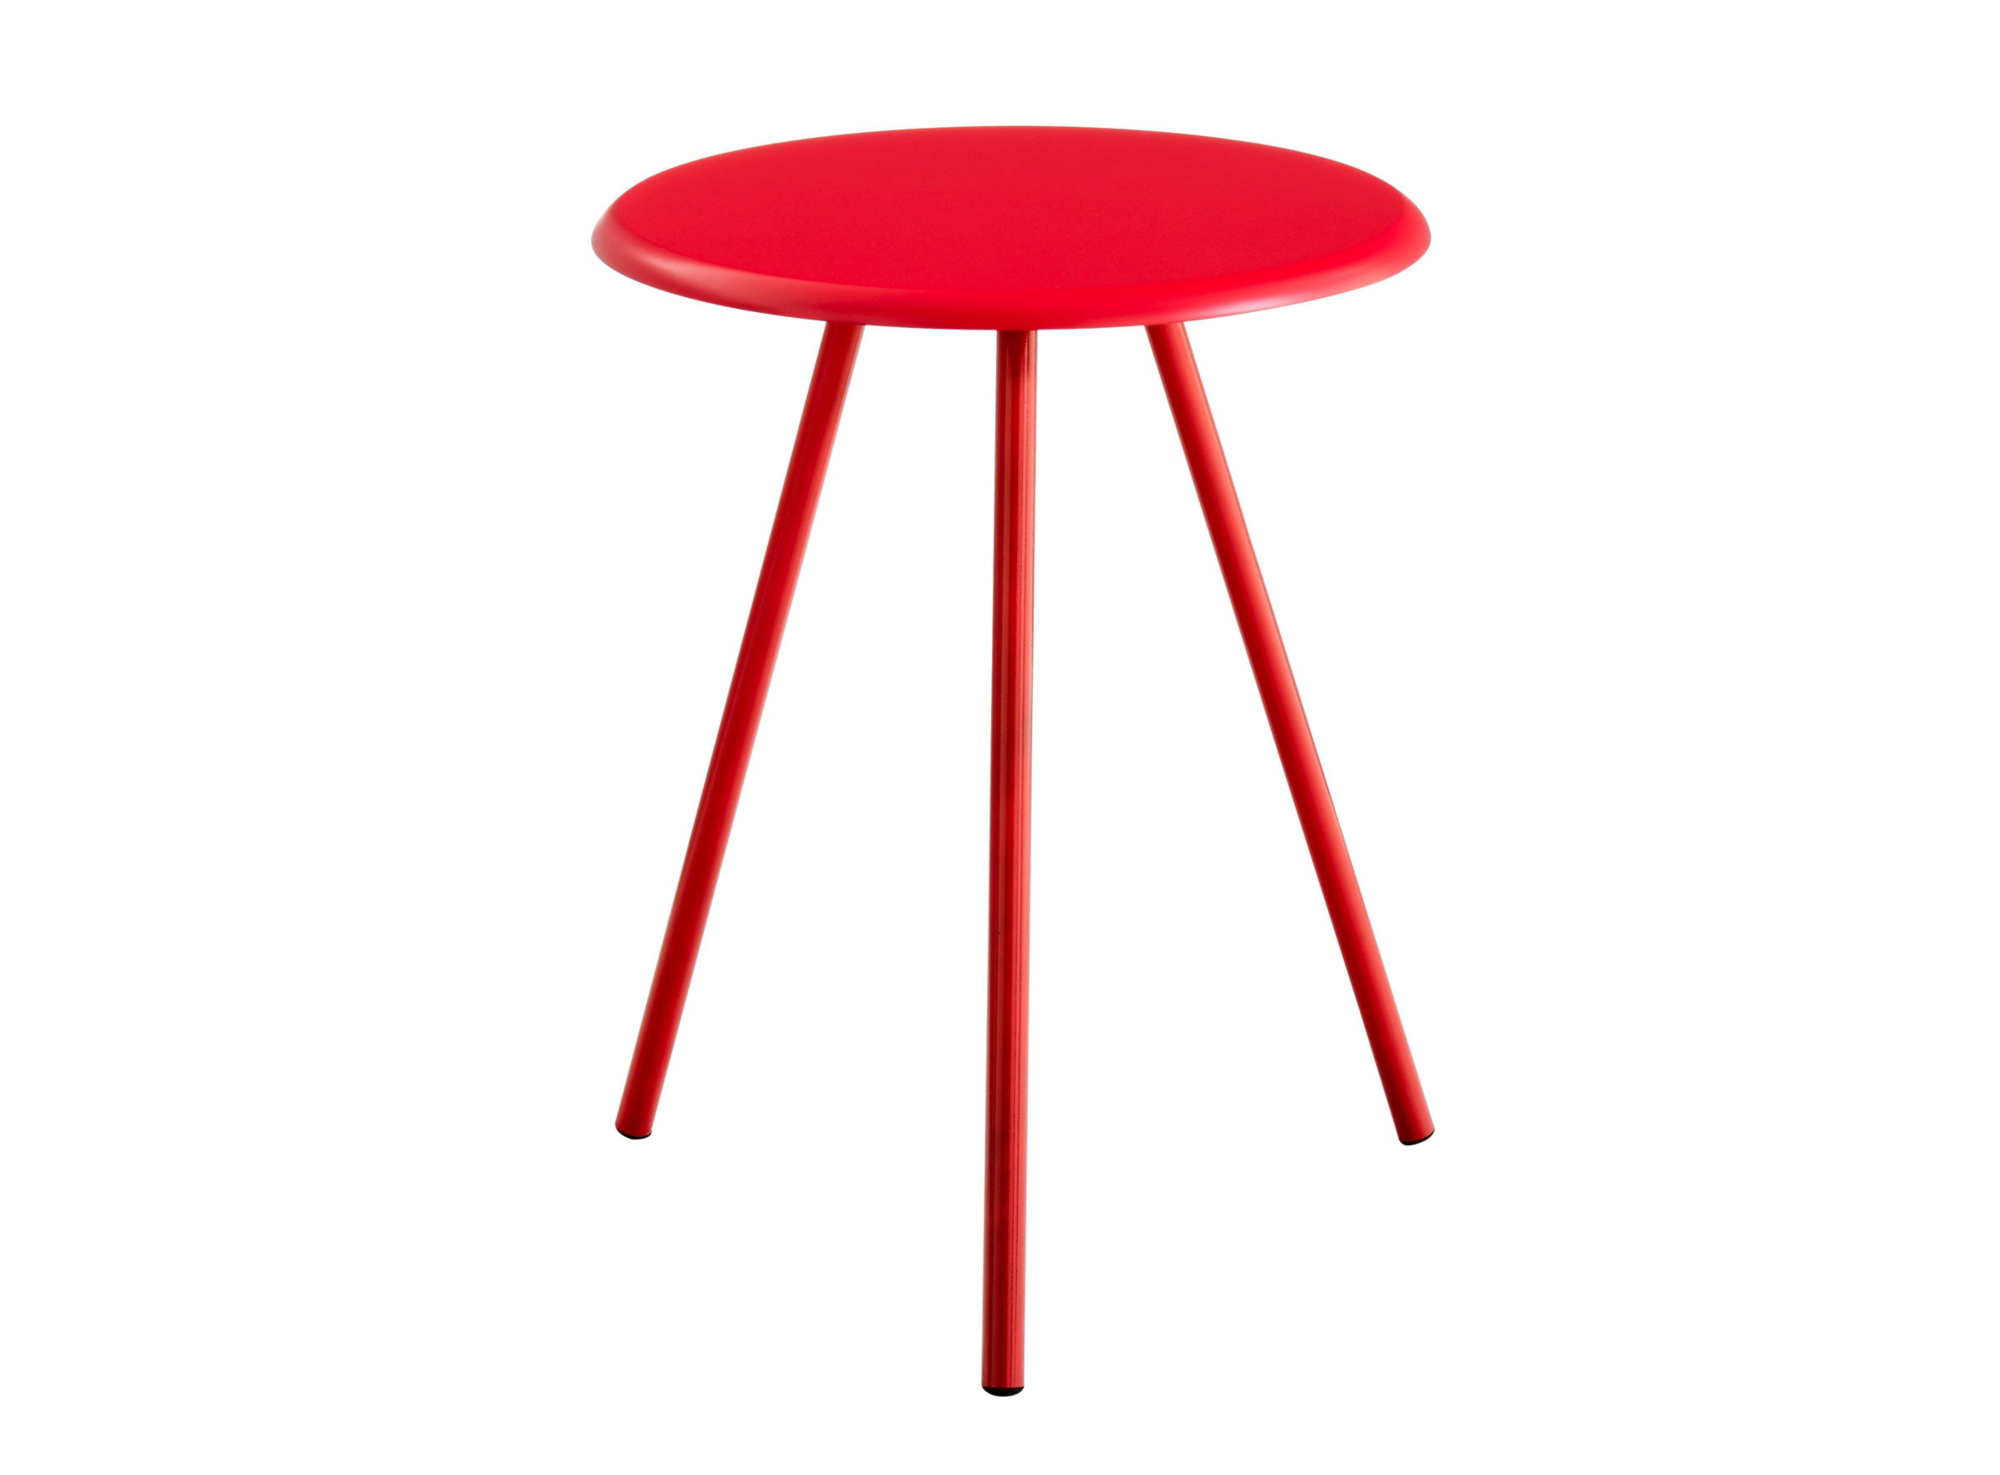 Table basse petit modele rouge fly - Table basse rouge fly ...